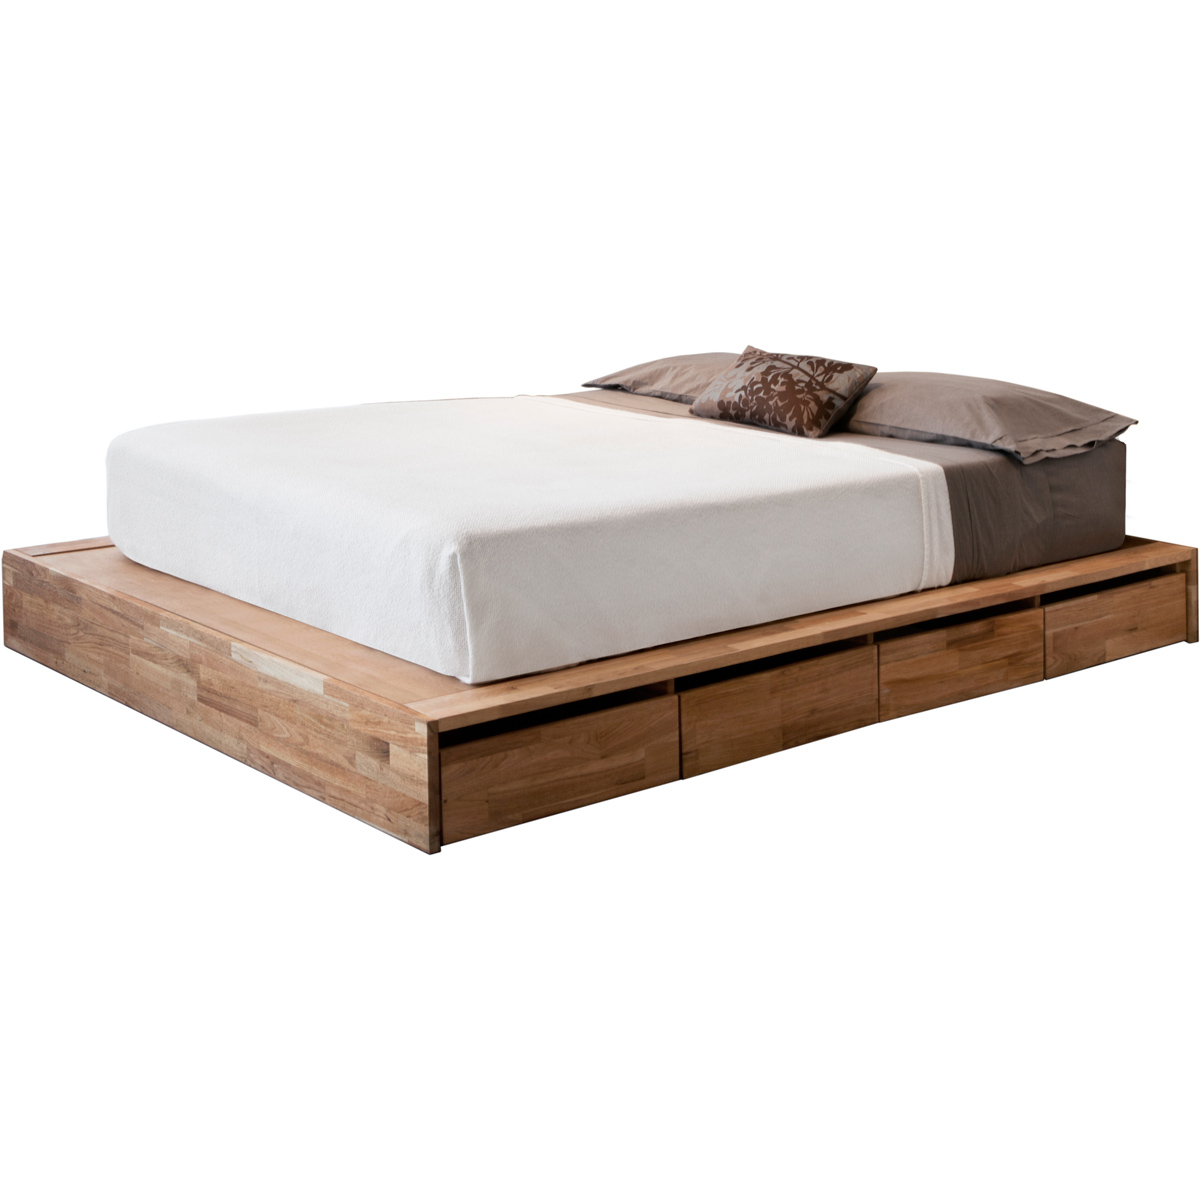 Lax Platform Bed W Storage Ikea Platform Bed Platform Bed With